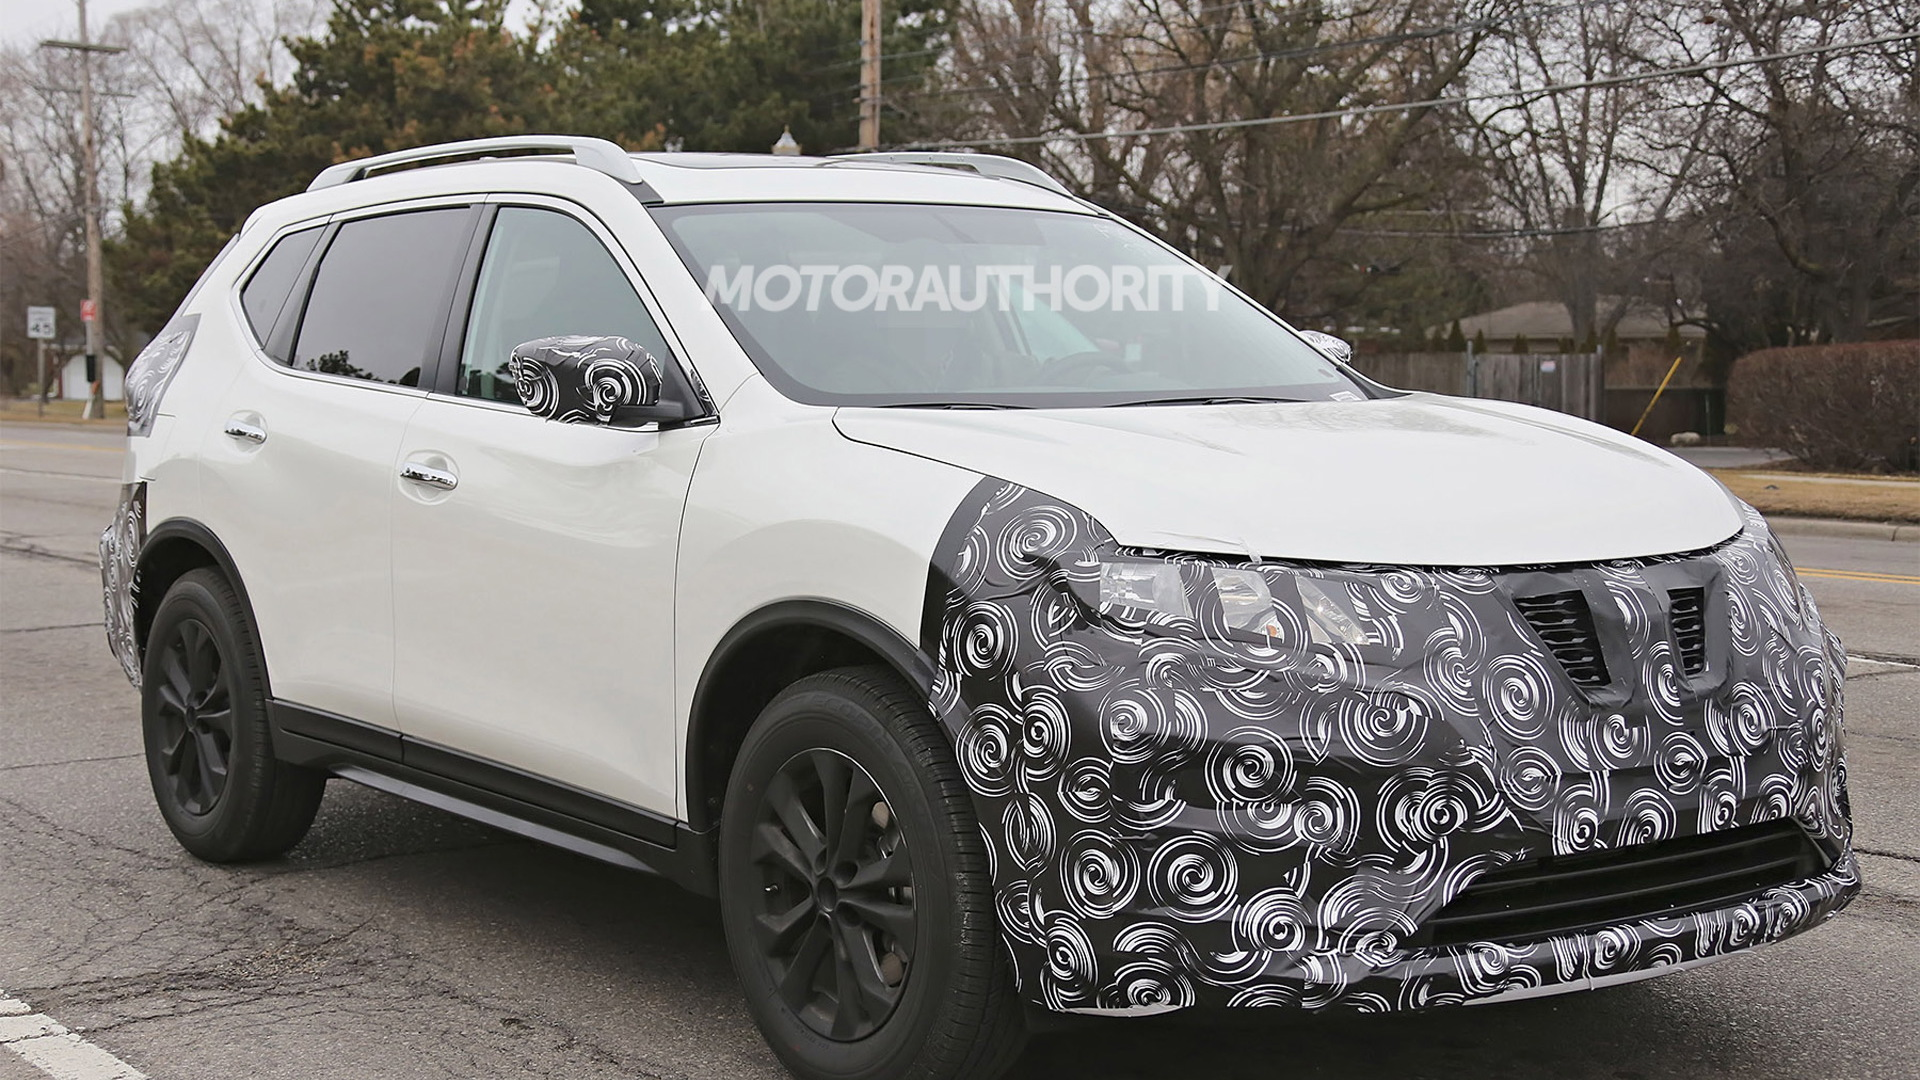 2017 Nissan Rogue facelift spy shots - Image via S. Baldauf/SB-Medien